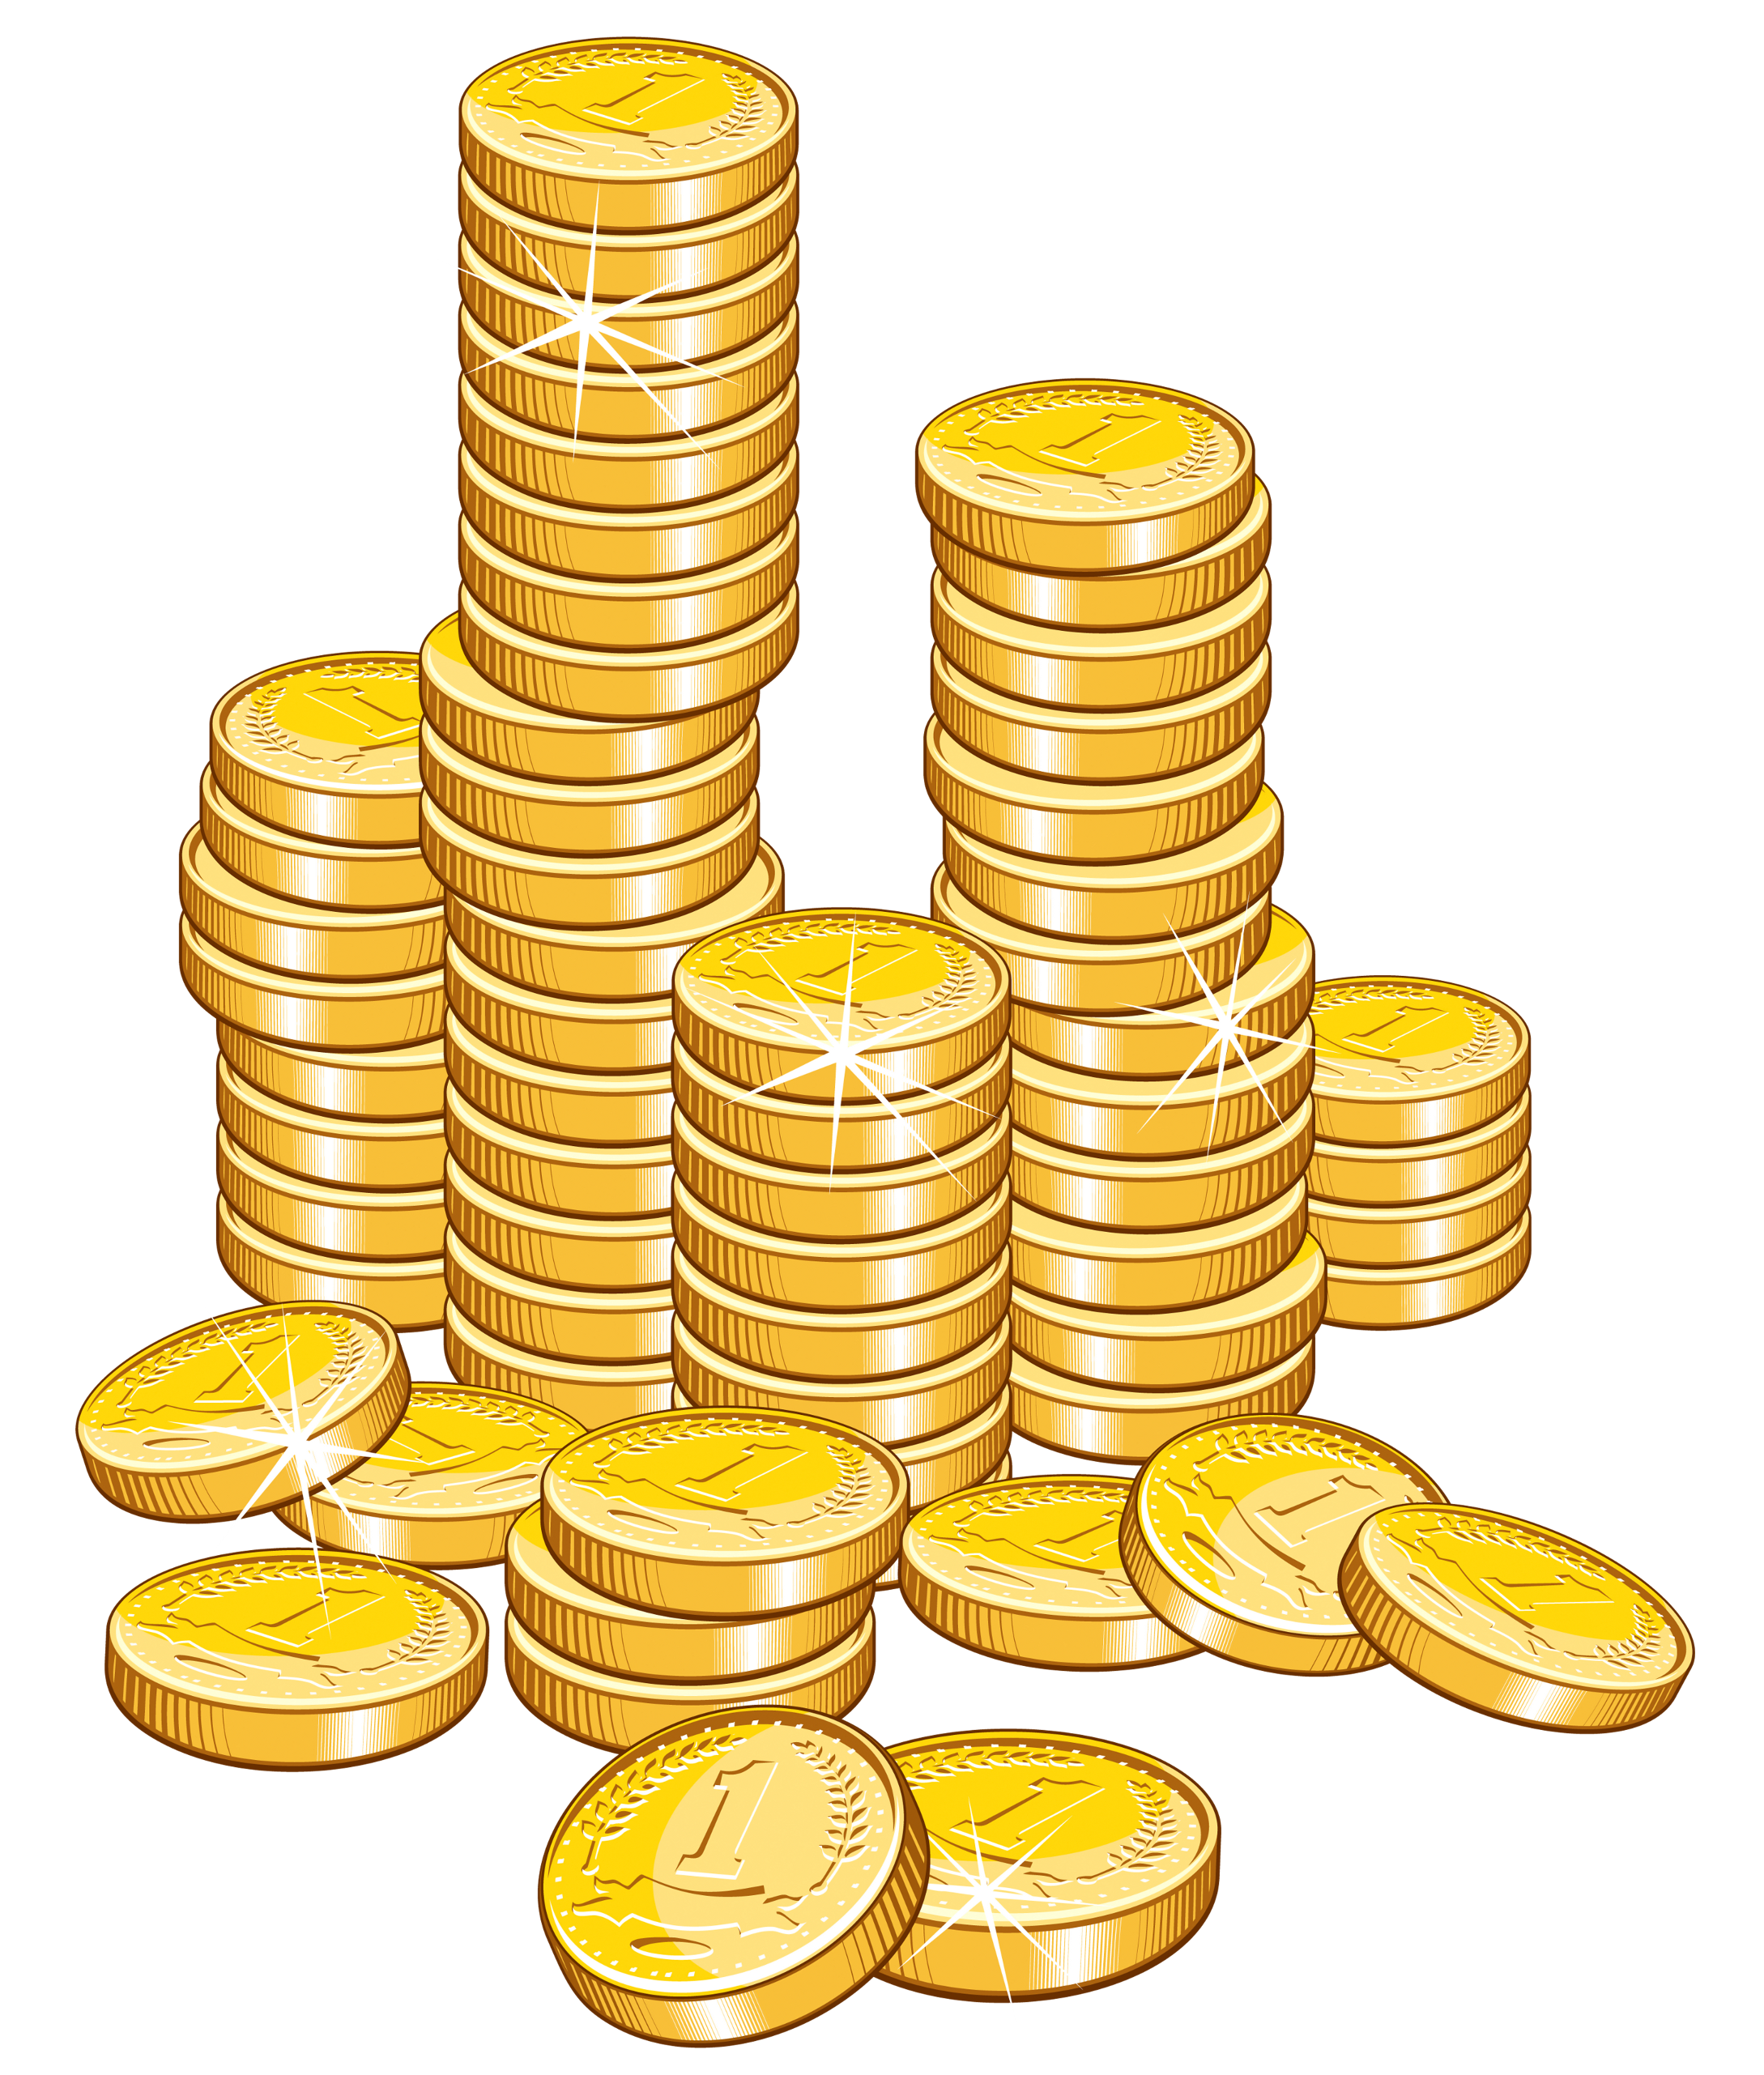 Coin clipart illustration. Mse games free online